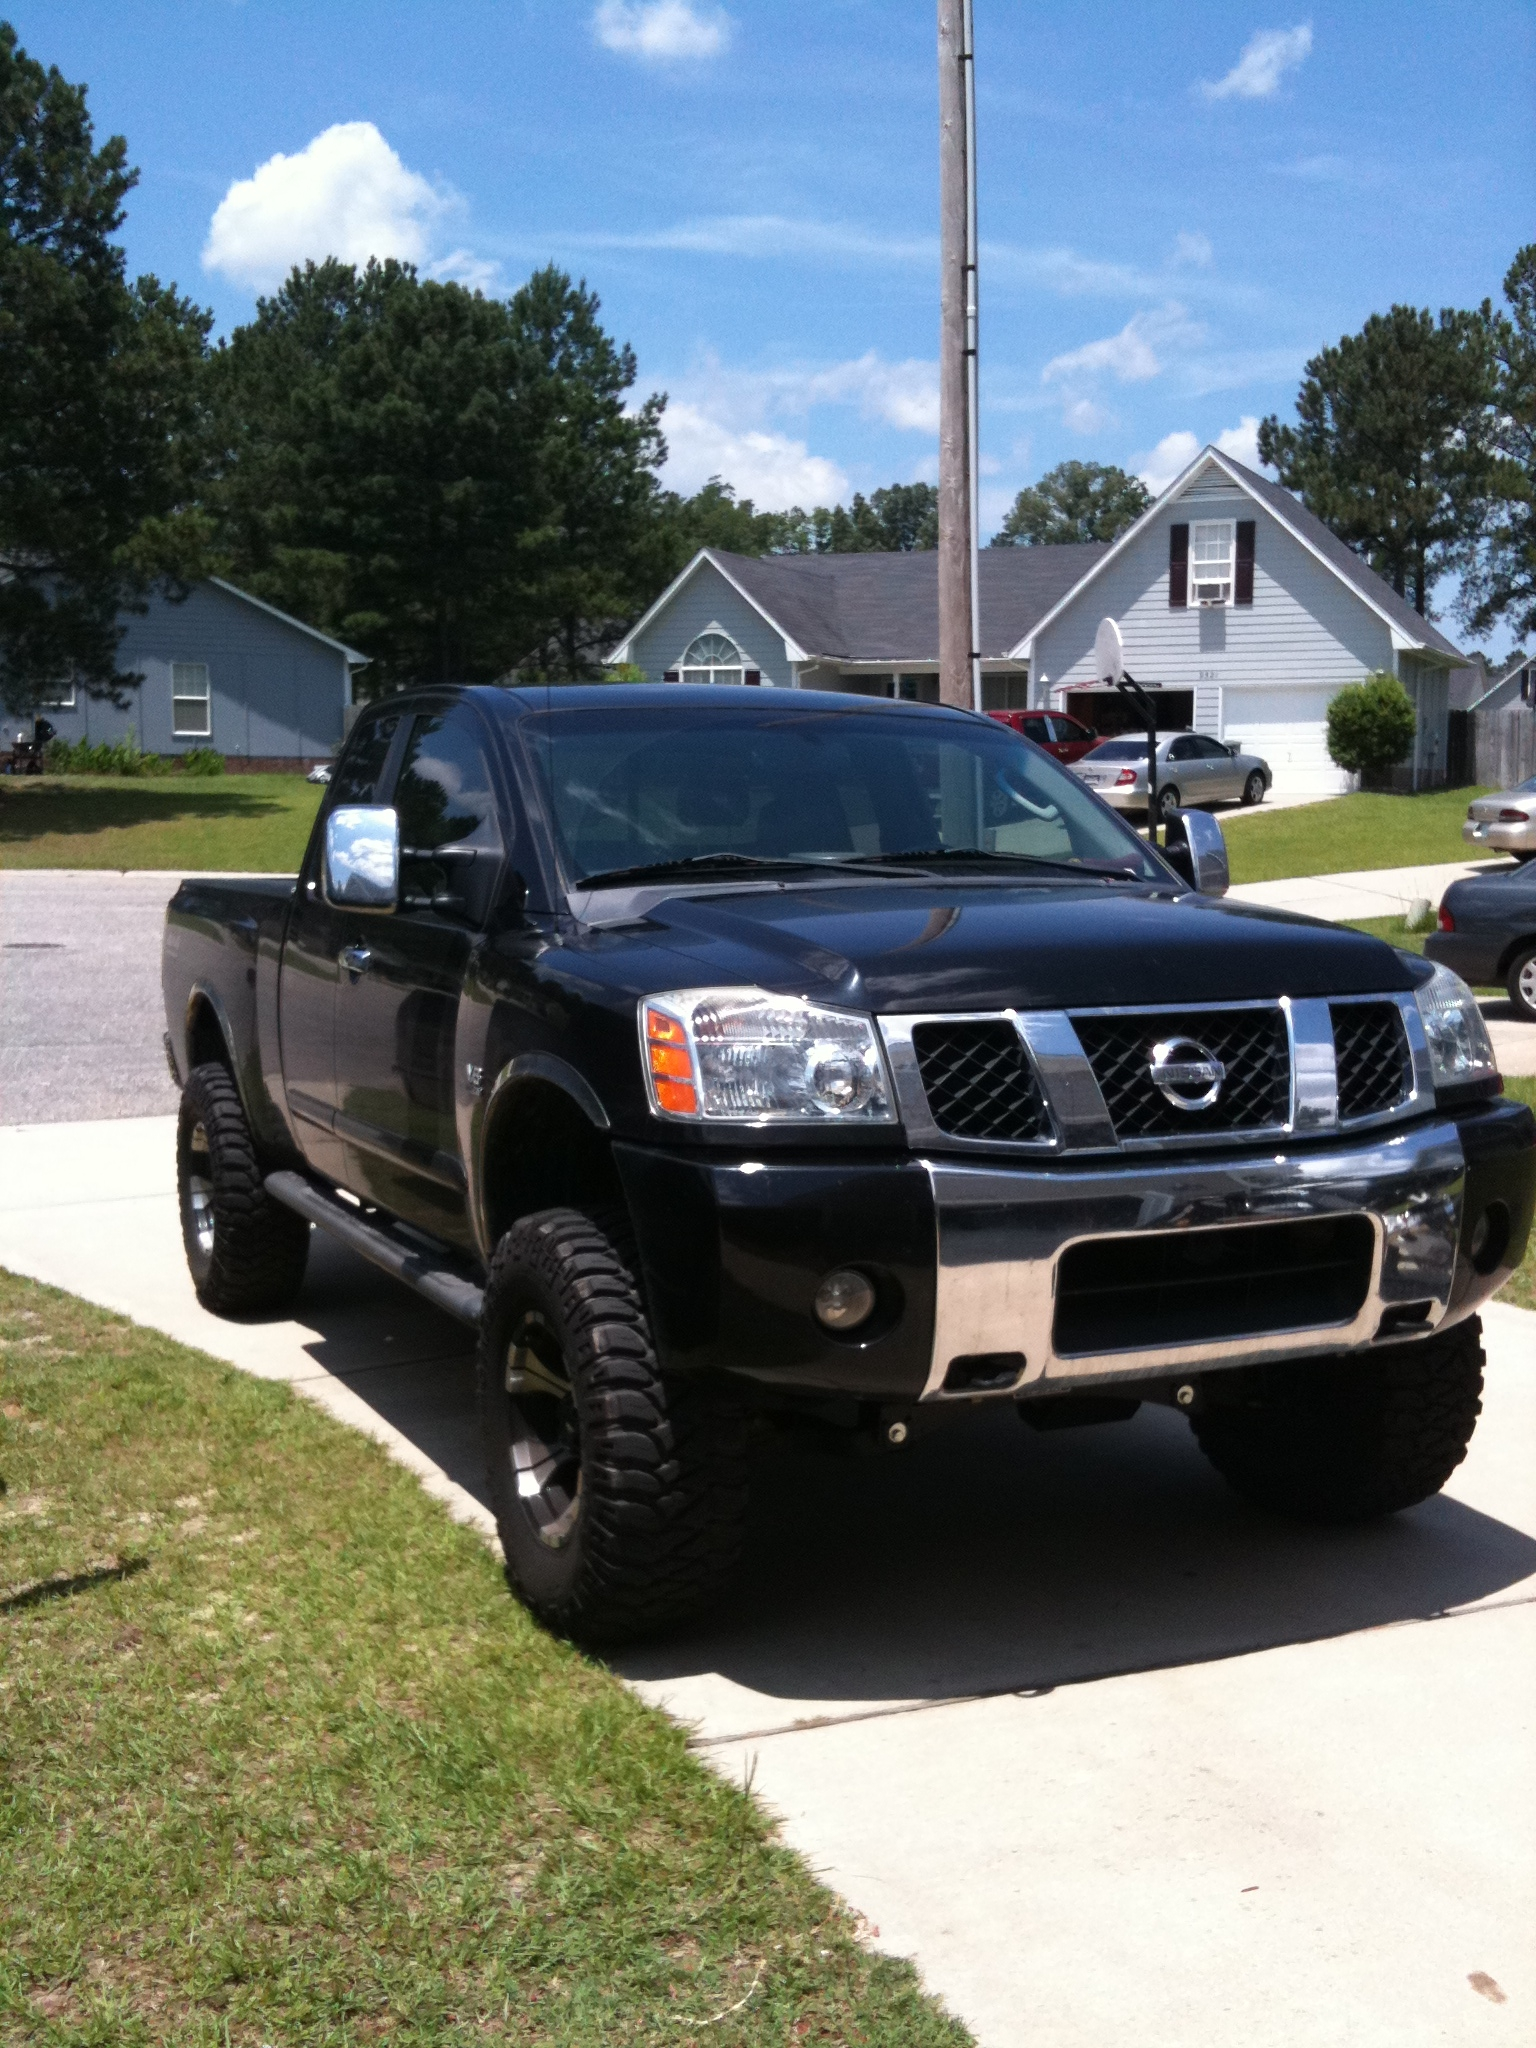 texas boy86 2004 nissan titan king cable pickup 4d 6 1 2 ft specs photos modification info at. Black Bedroom Furniture Sets. Home Design Ideas